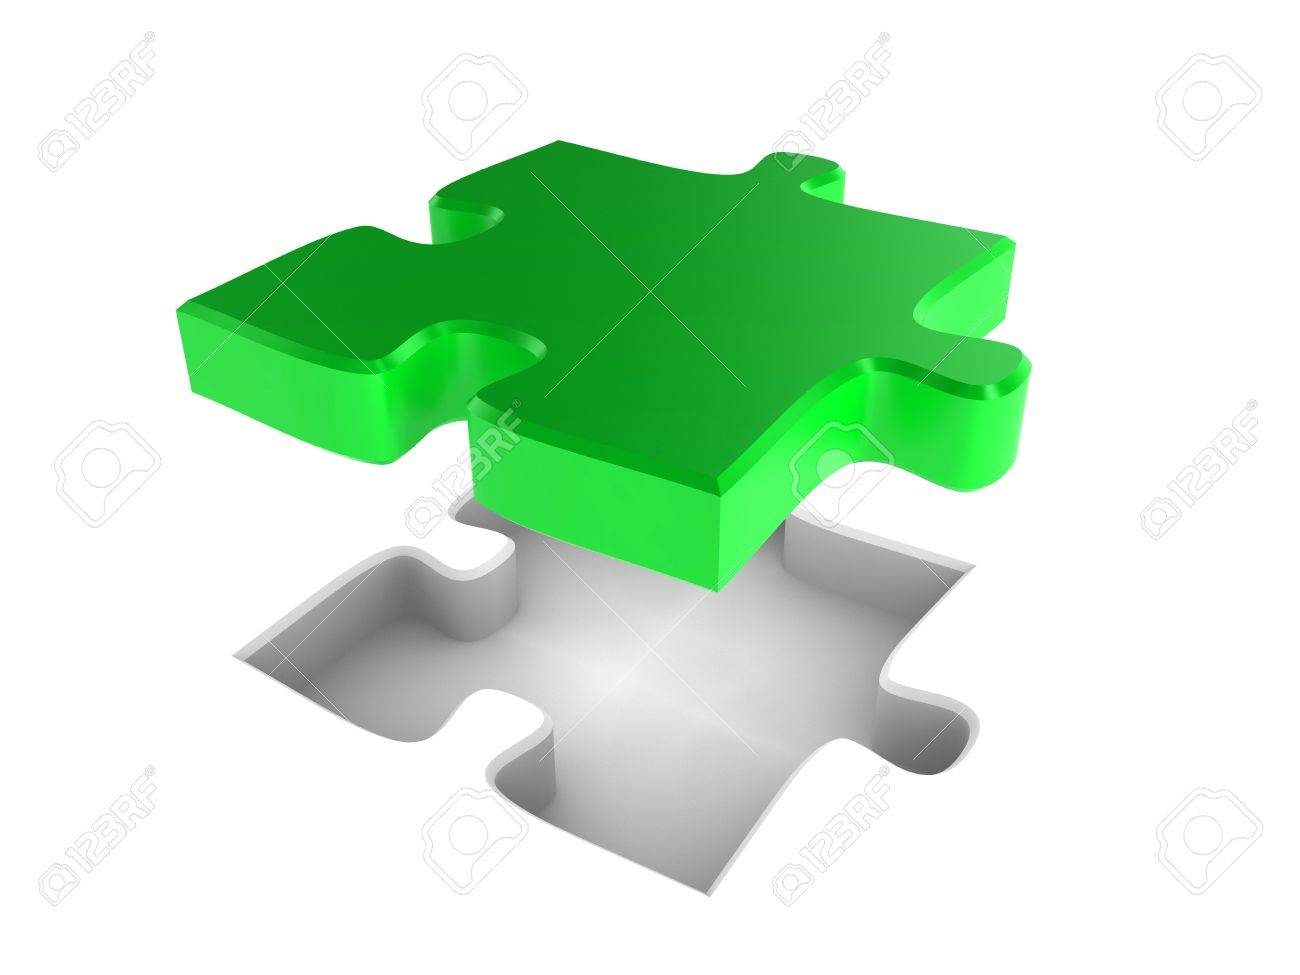 The missing piece of a jigsaw puzzle, fitting into place Stock Photo - 7133566